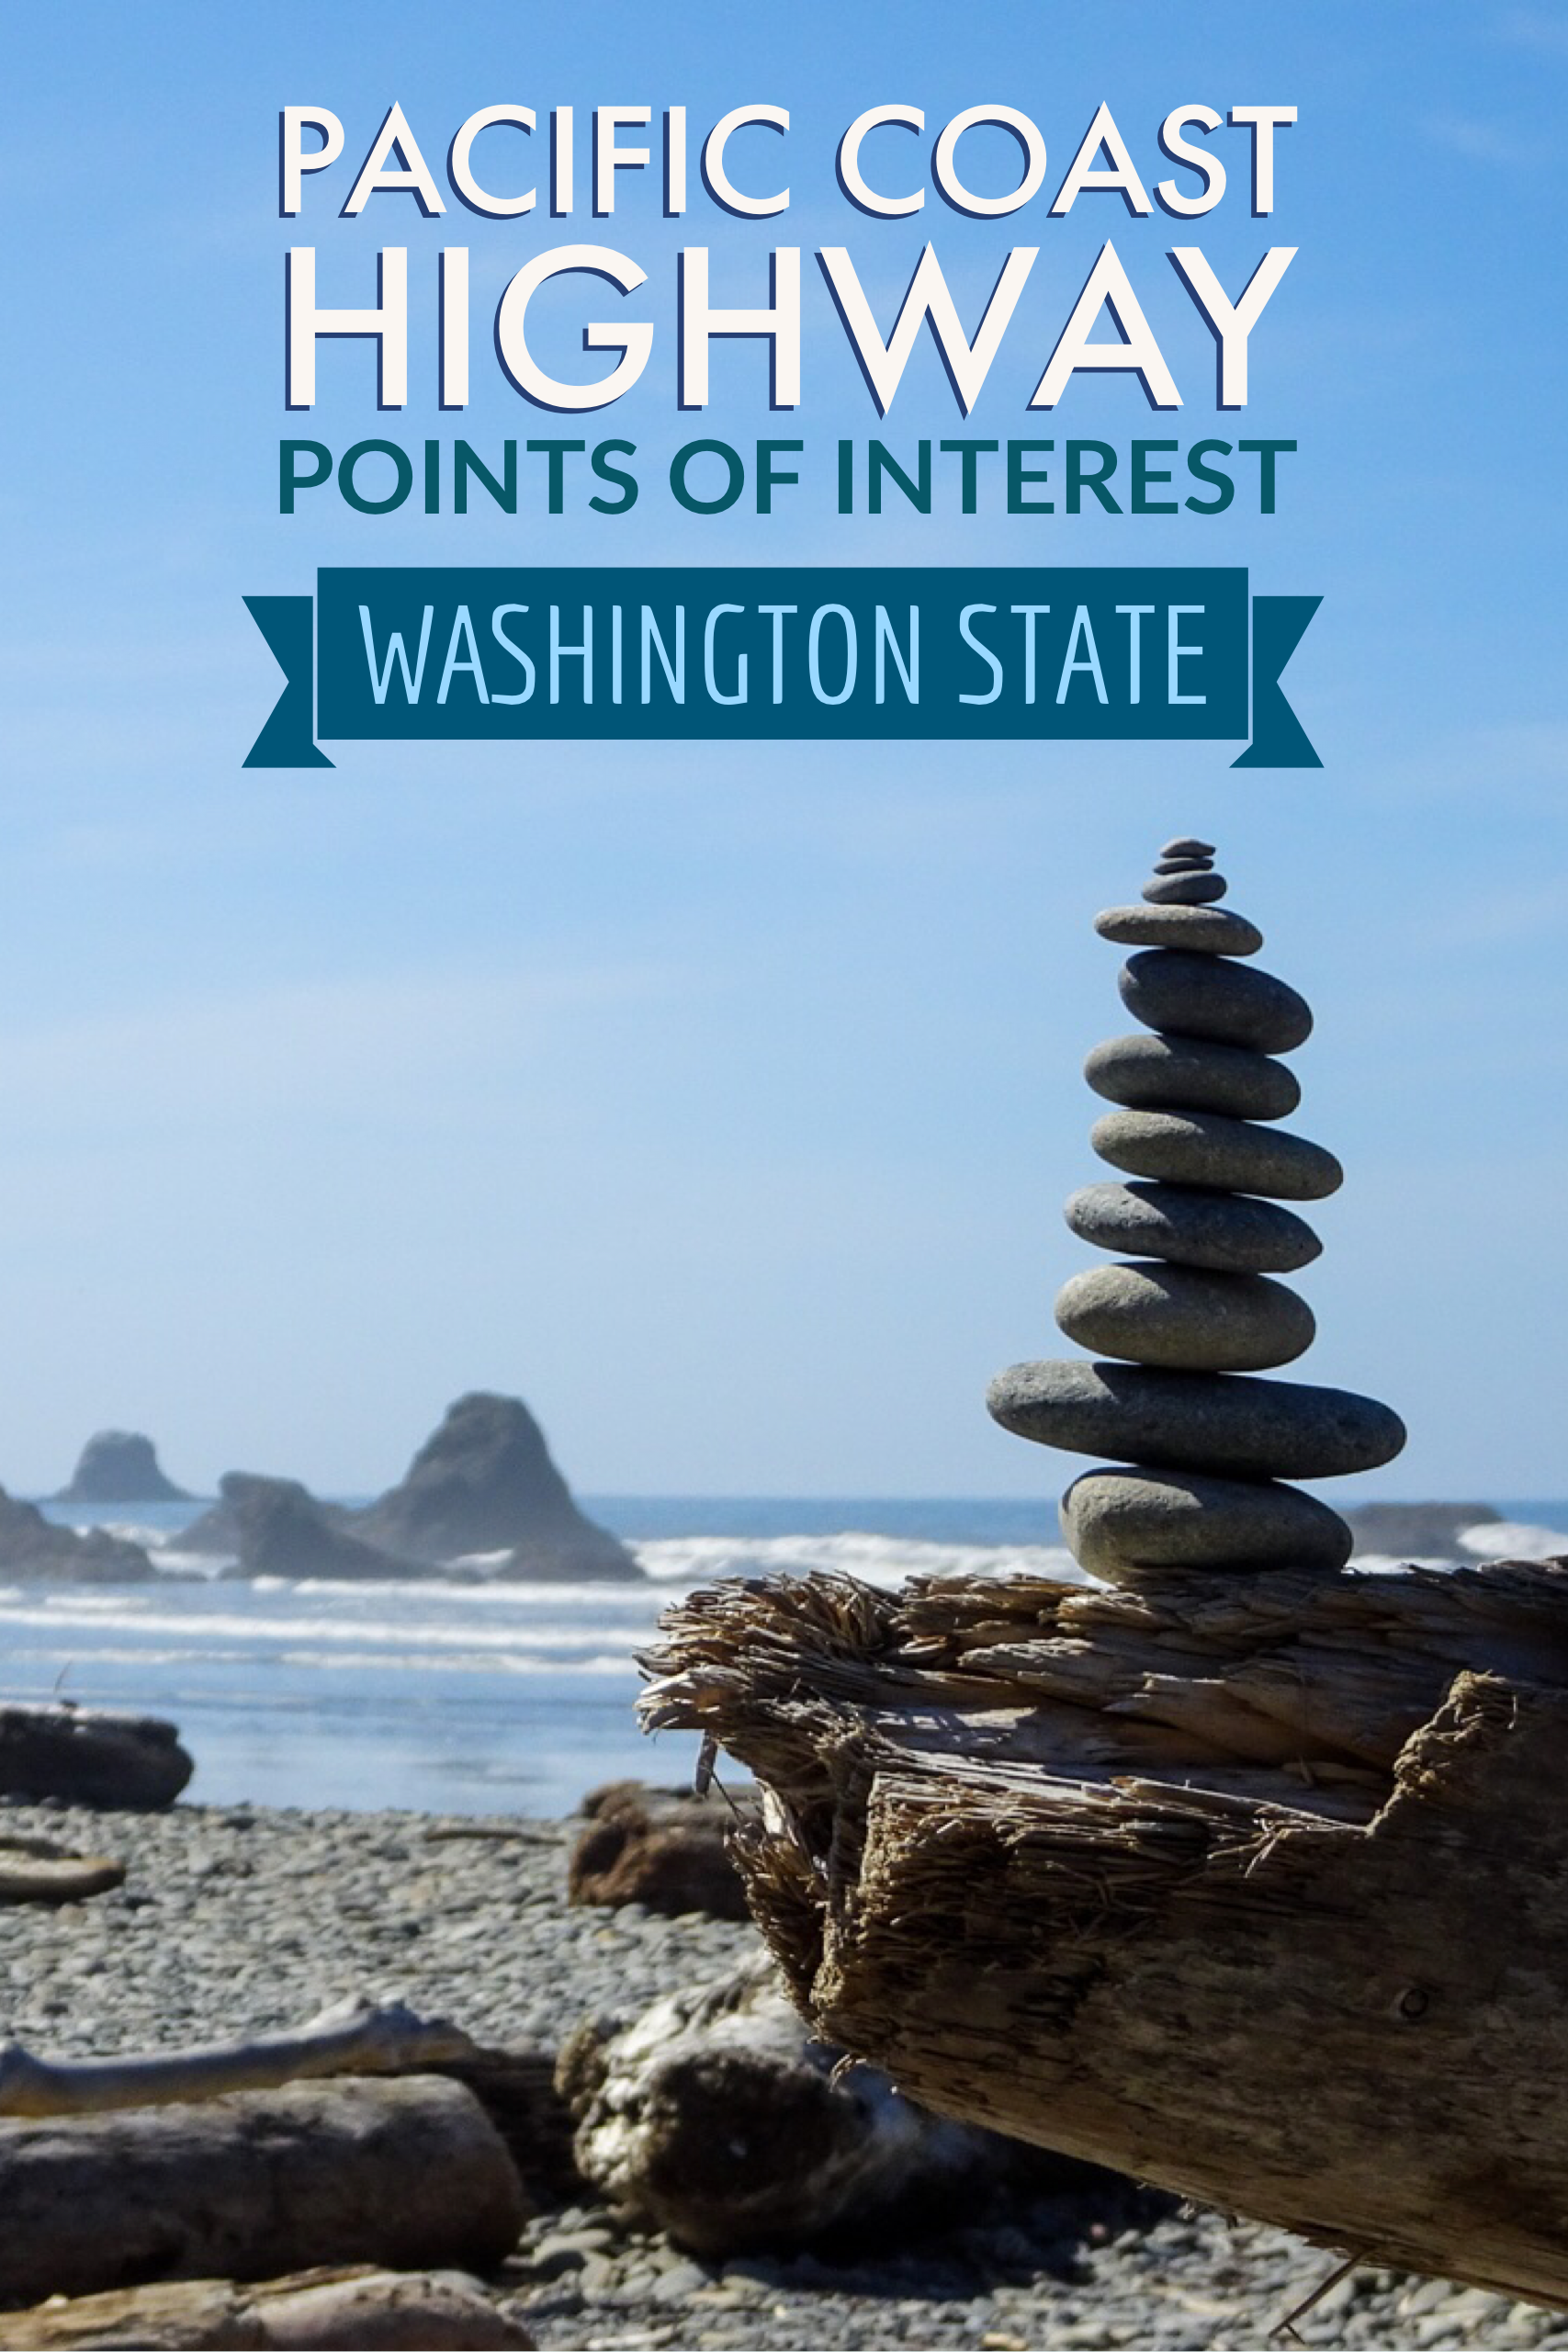 A road trip guide, including where to stop and stay, along the Washington Coast